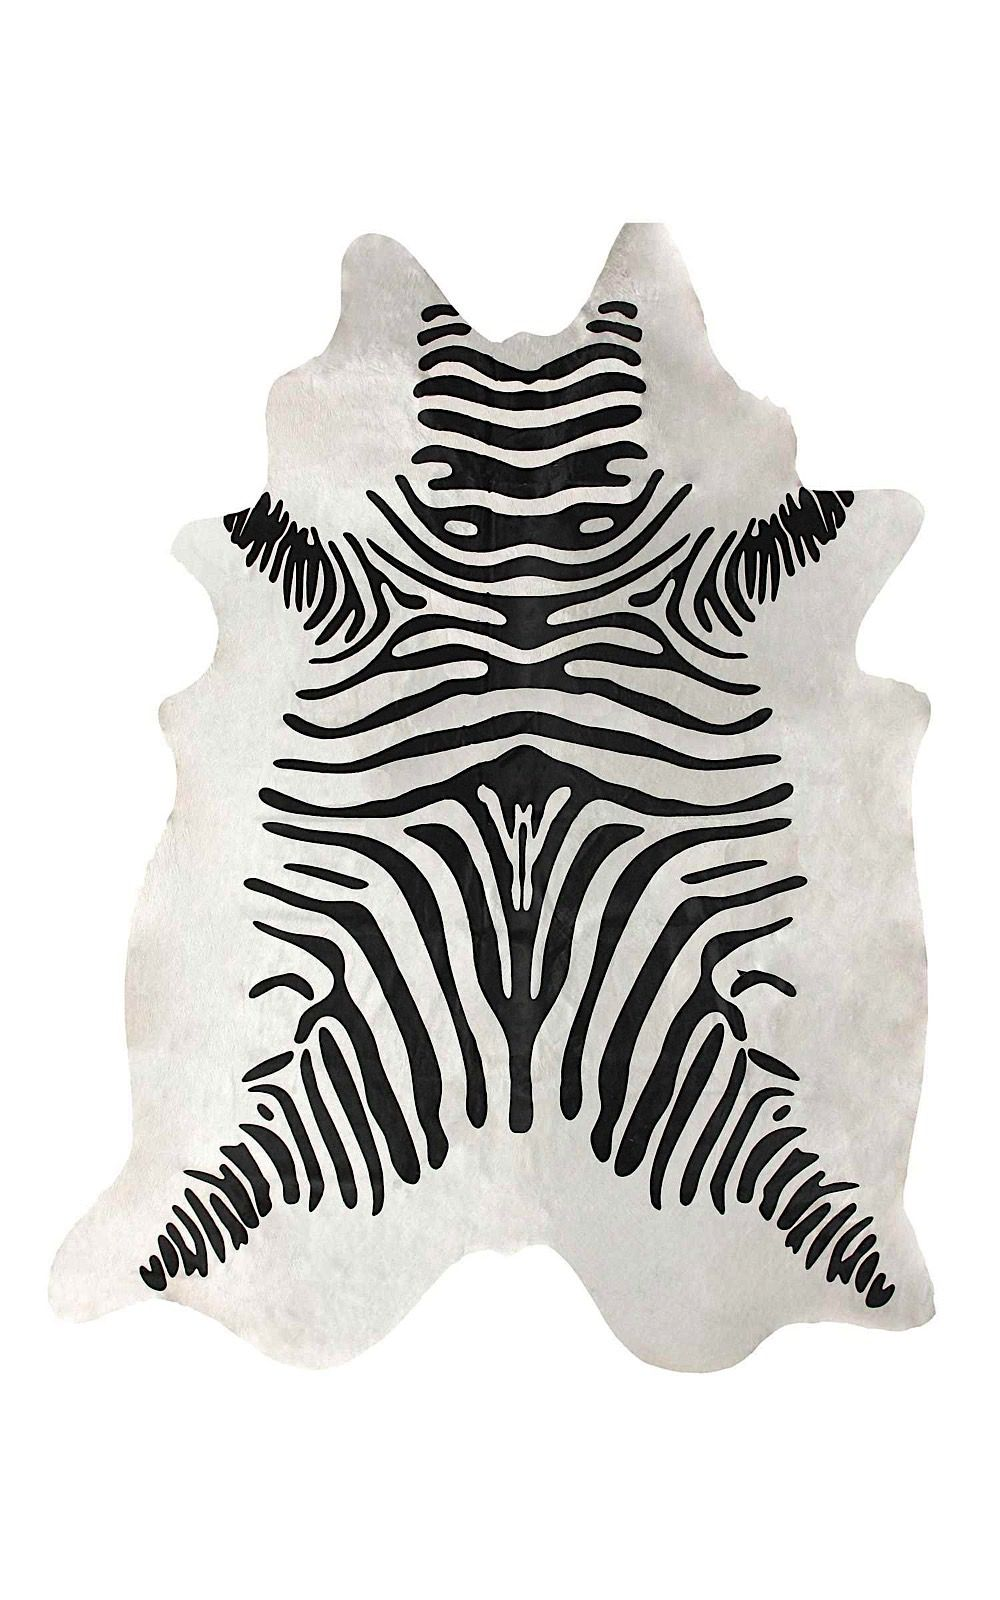 nuloom striped cowhide animal inspirations area rug collection